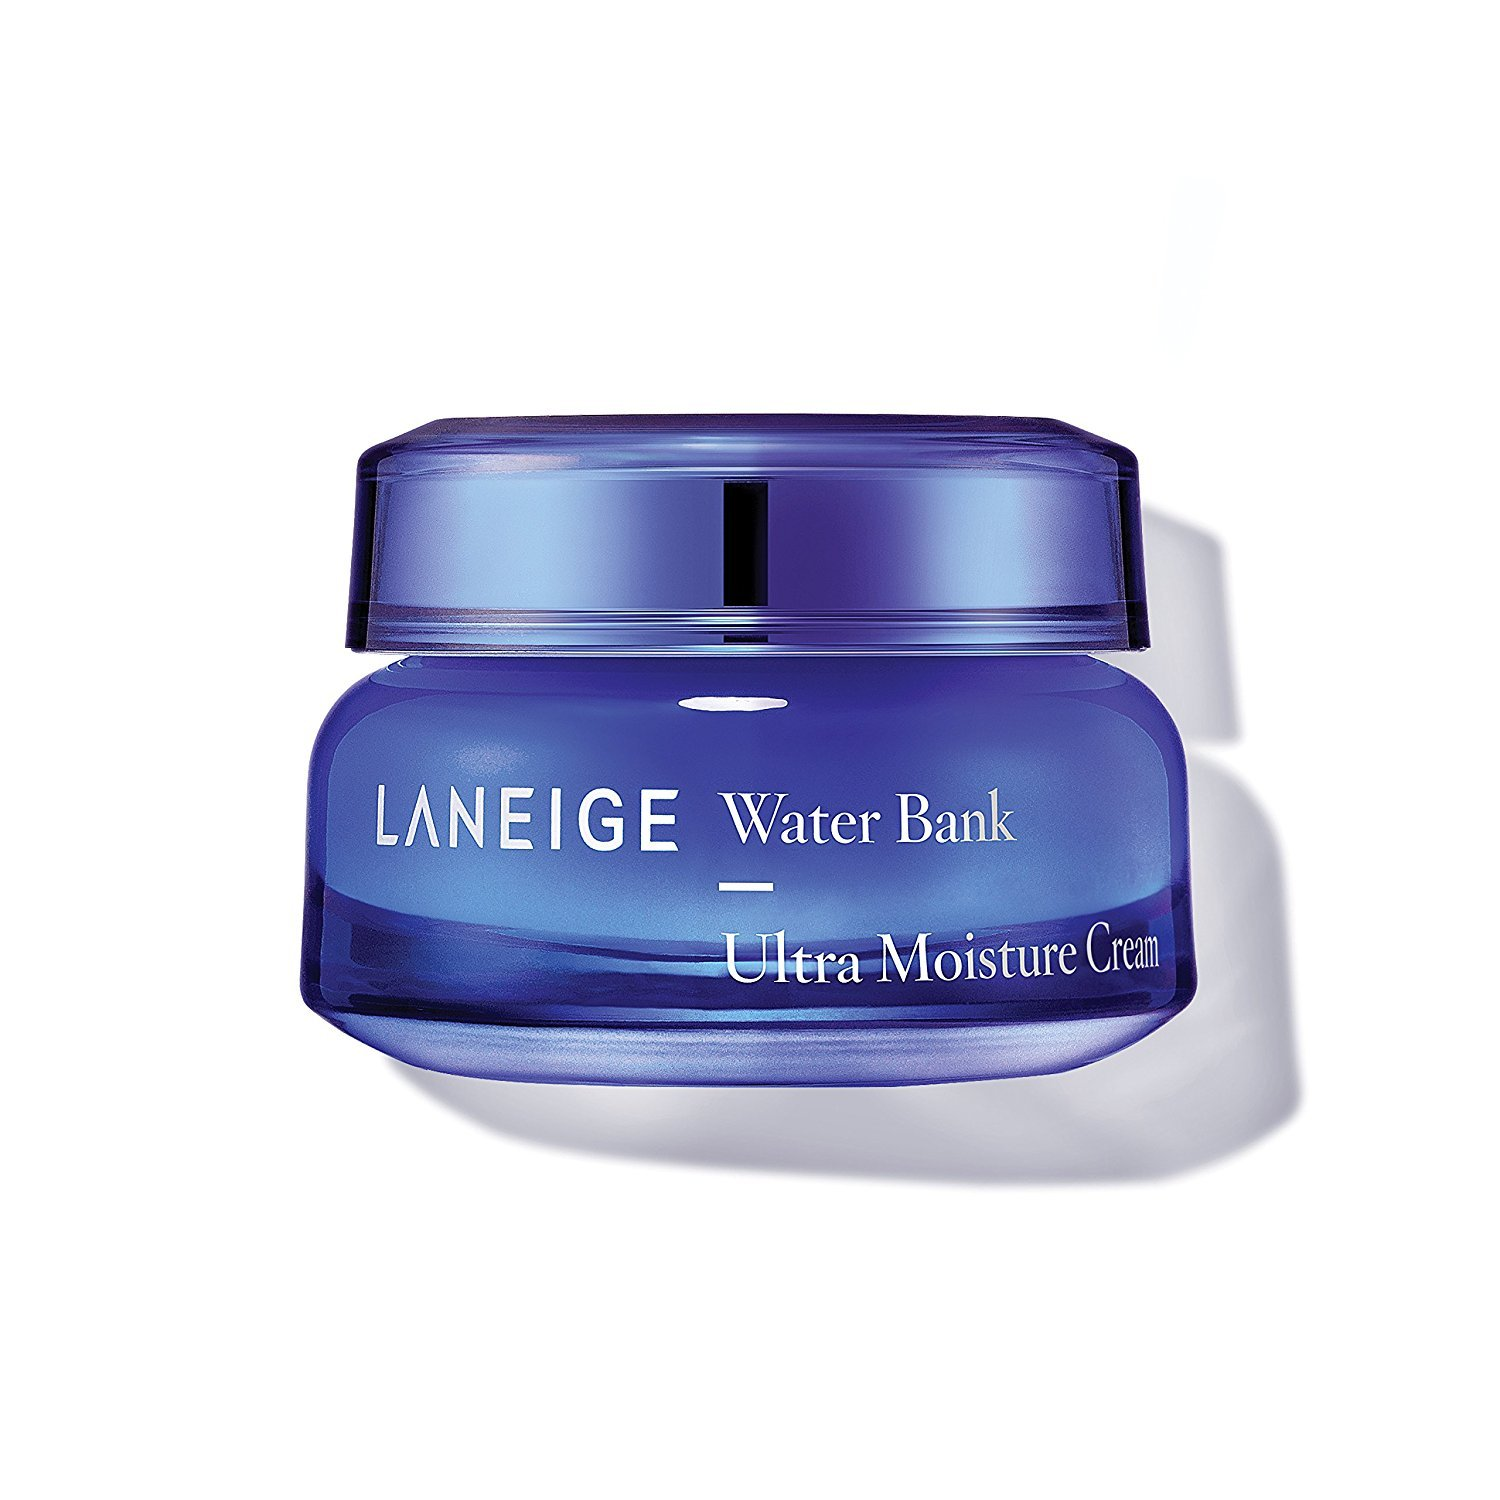 Laneige Water Bank Ultra Moisture Cream 50ml